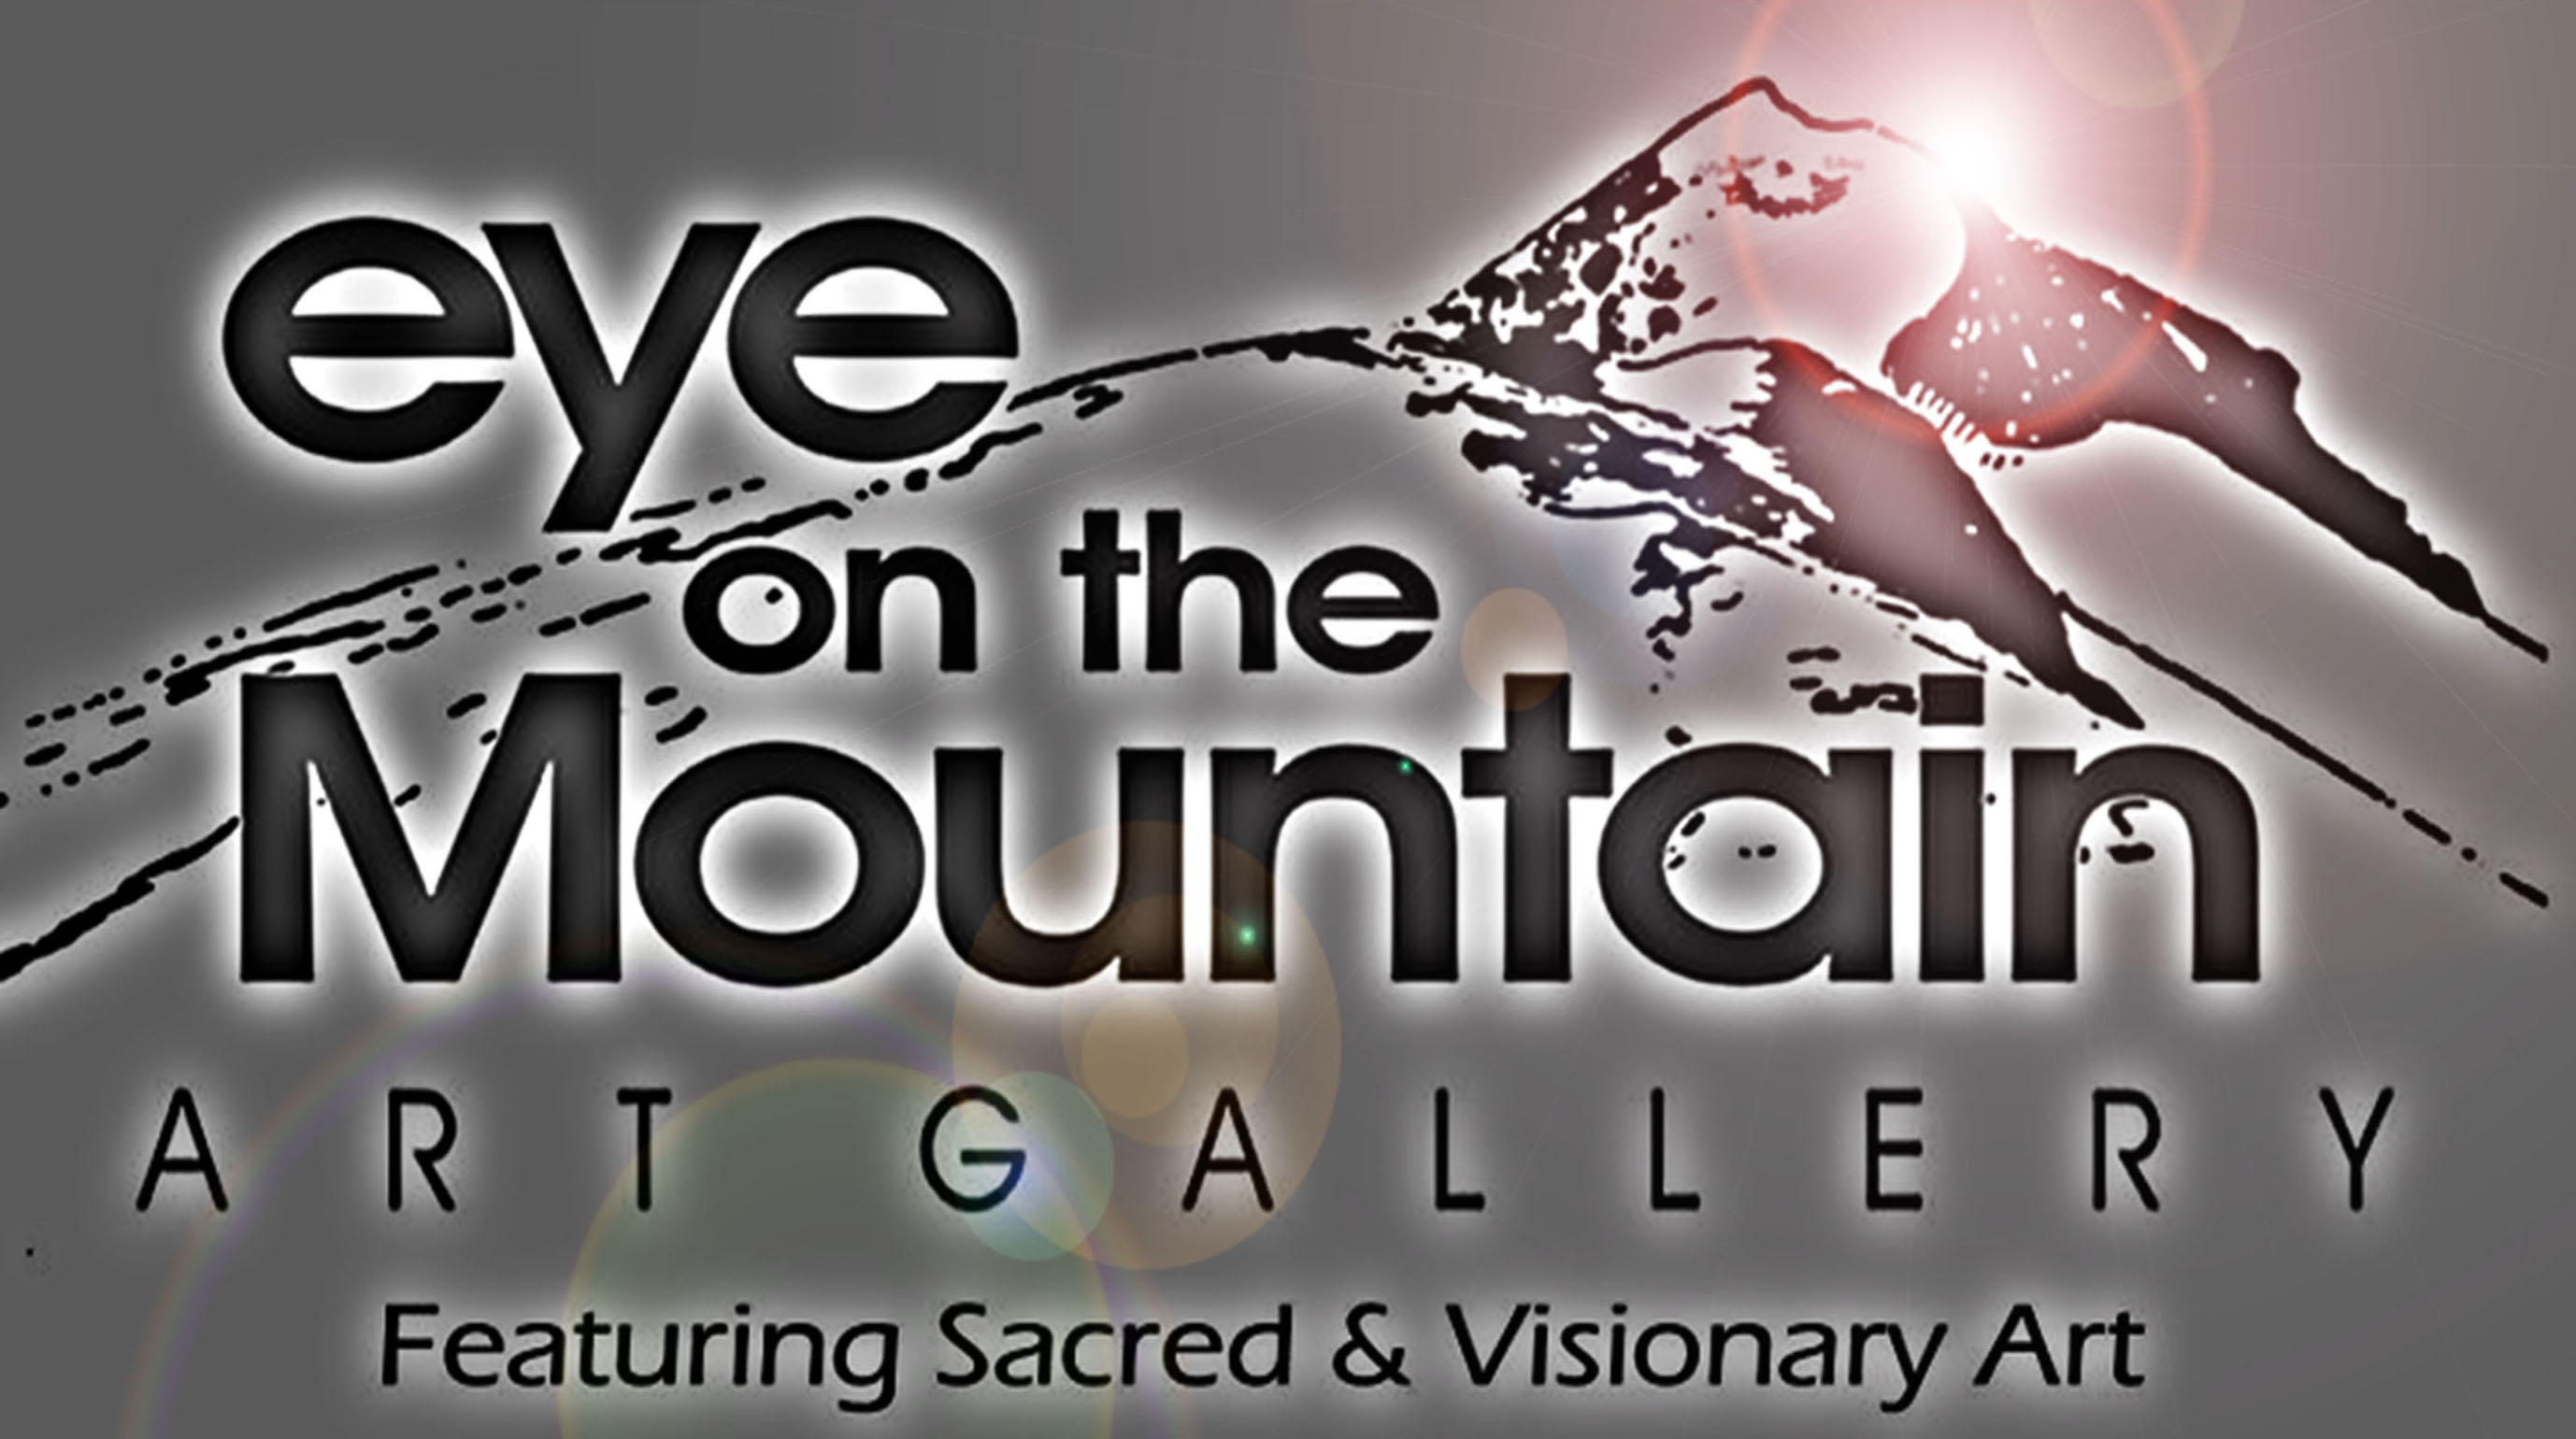 Santa Fe Art Gallery, Eye on the Mountain Art Gallery, Visionary Art